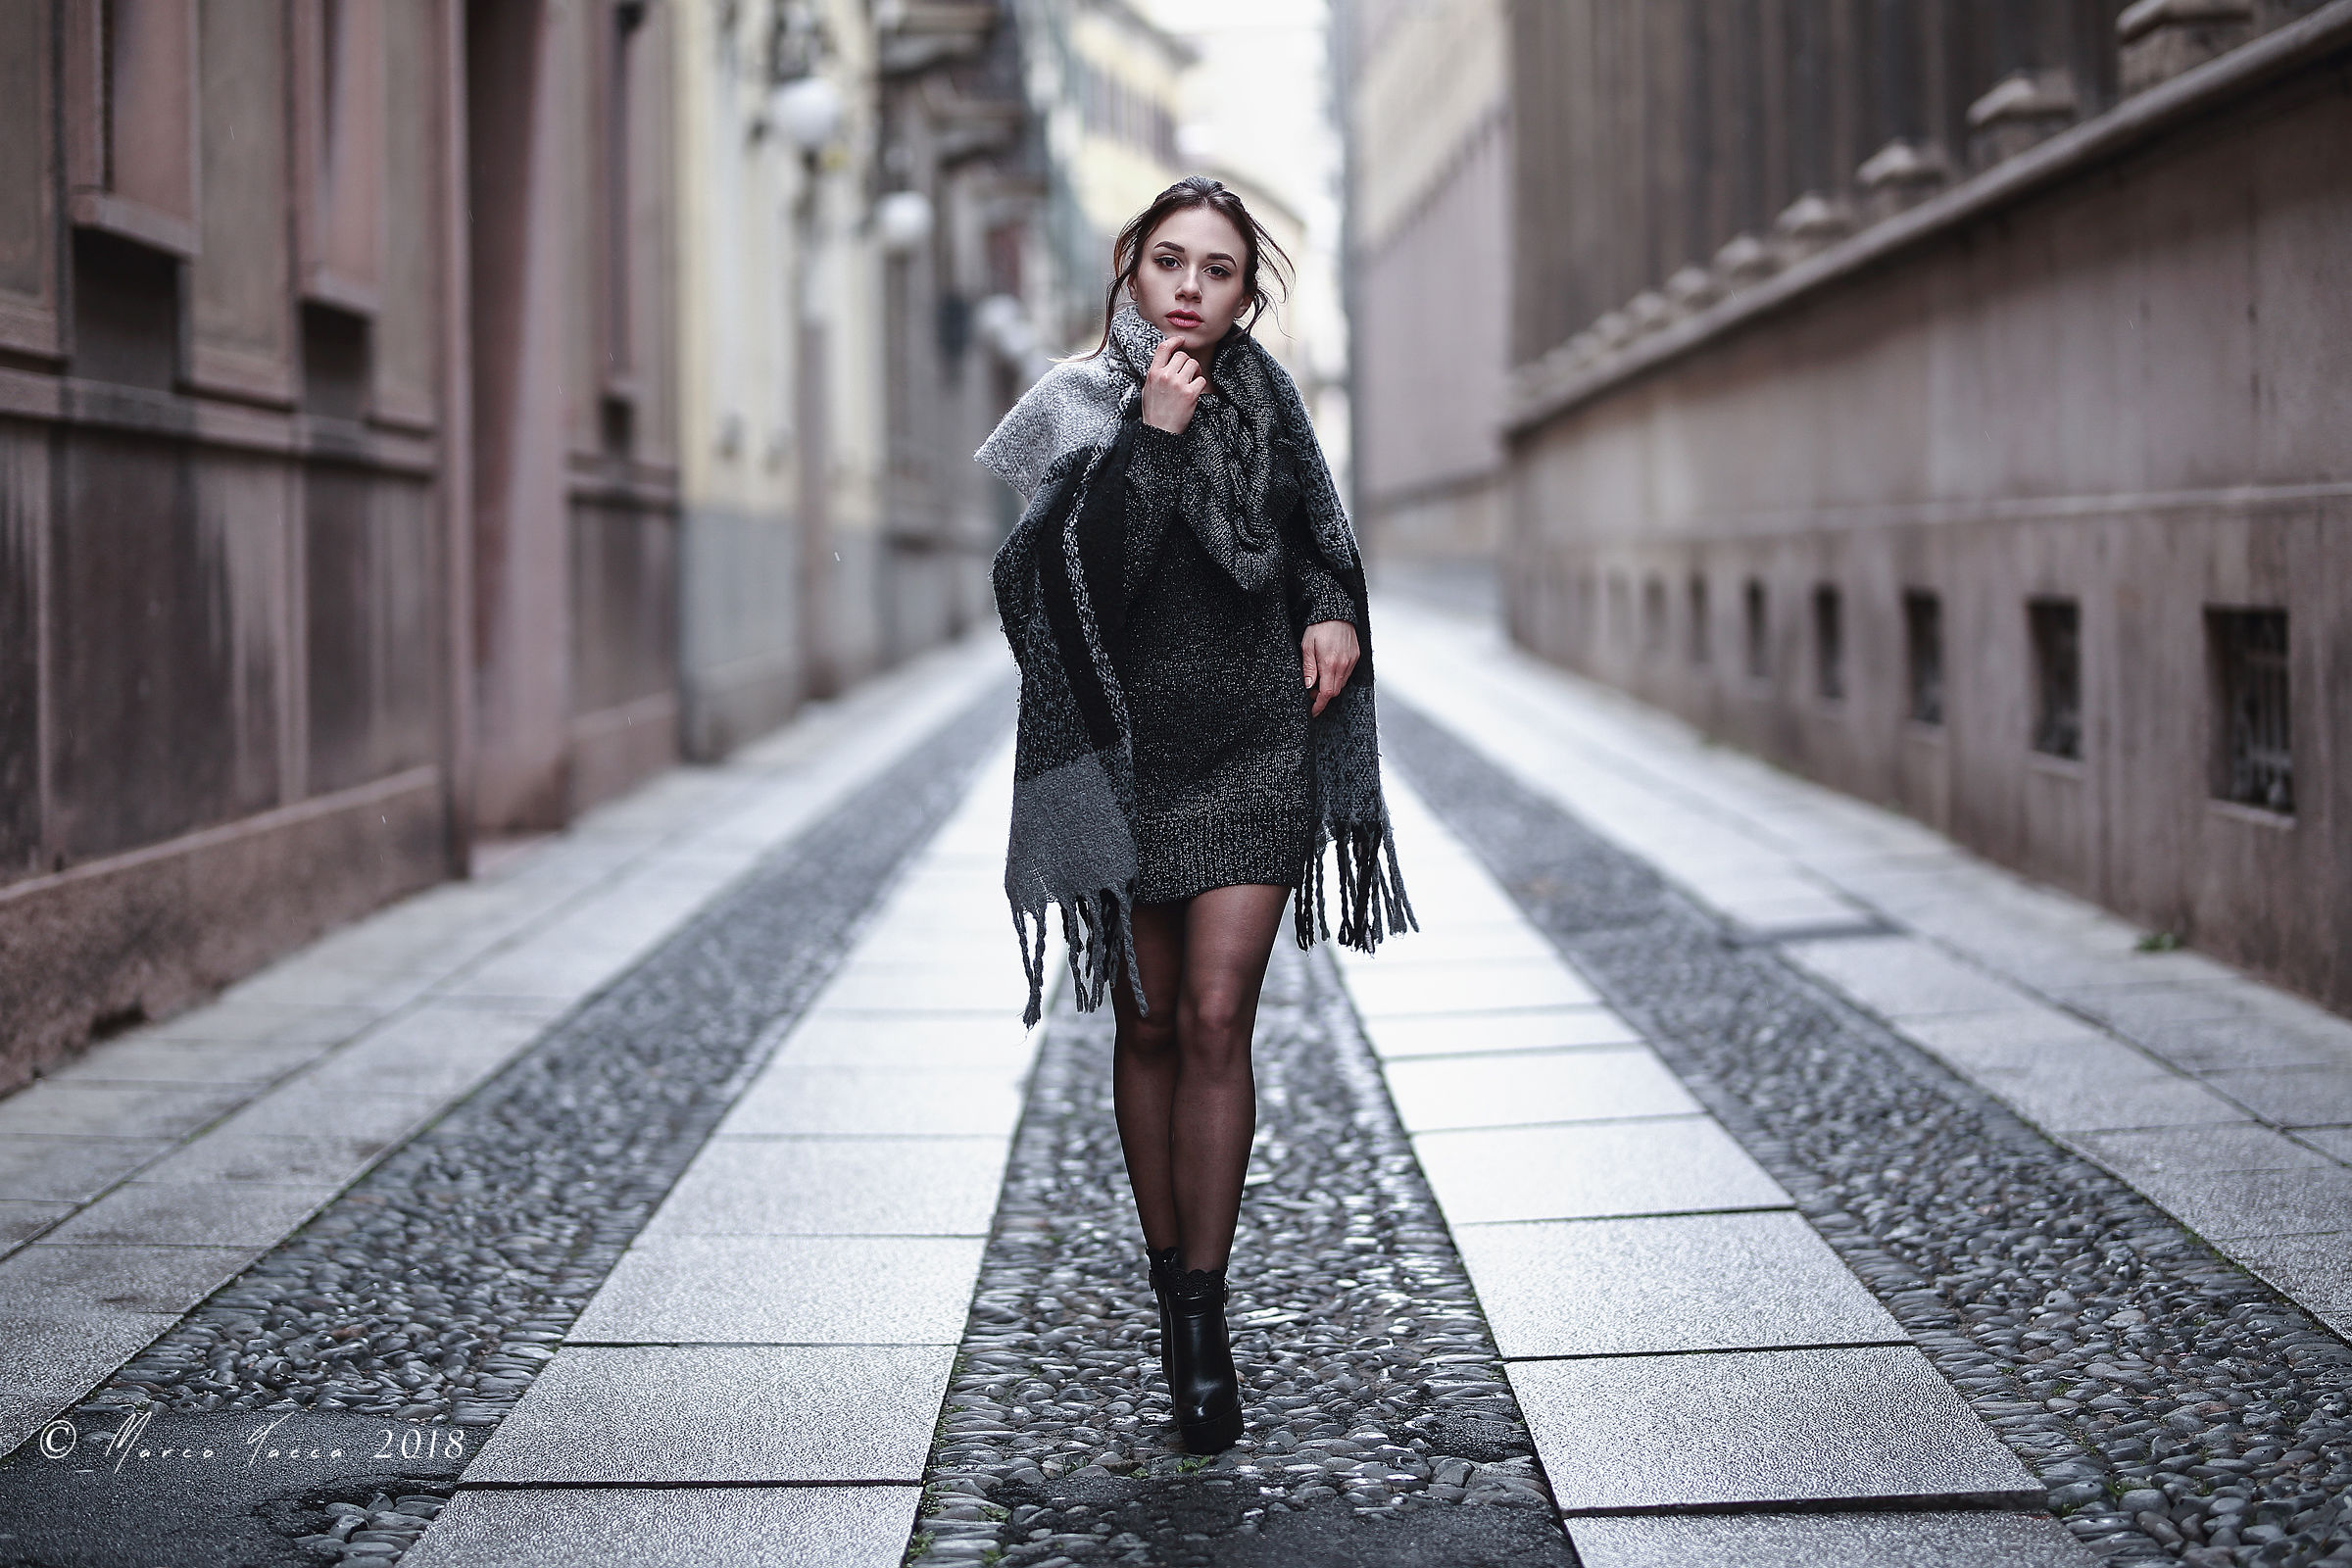 Walking in the city...